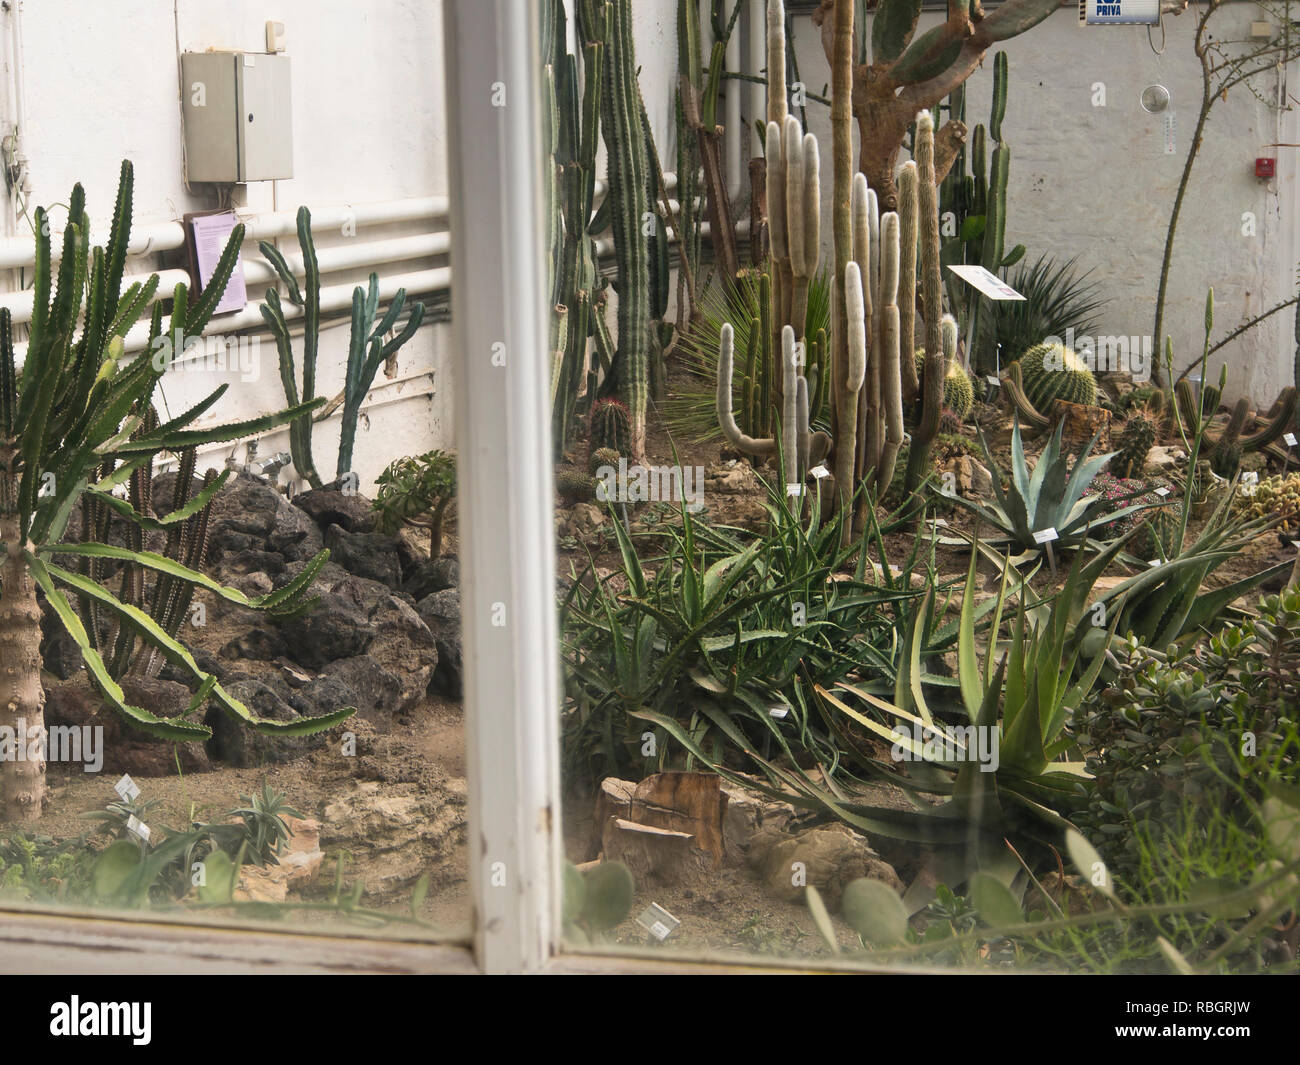 Cacti and succulents in a greenhouse in the botanical garden in Oslo Norway - Stock Image